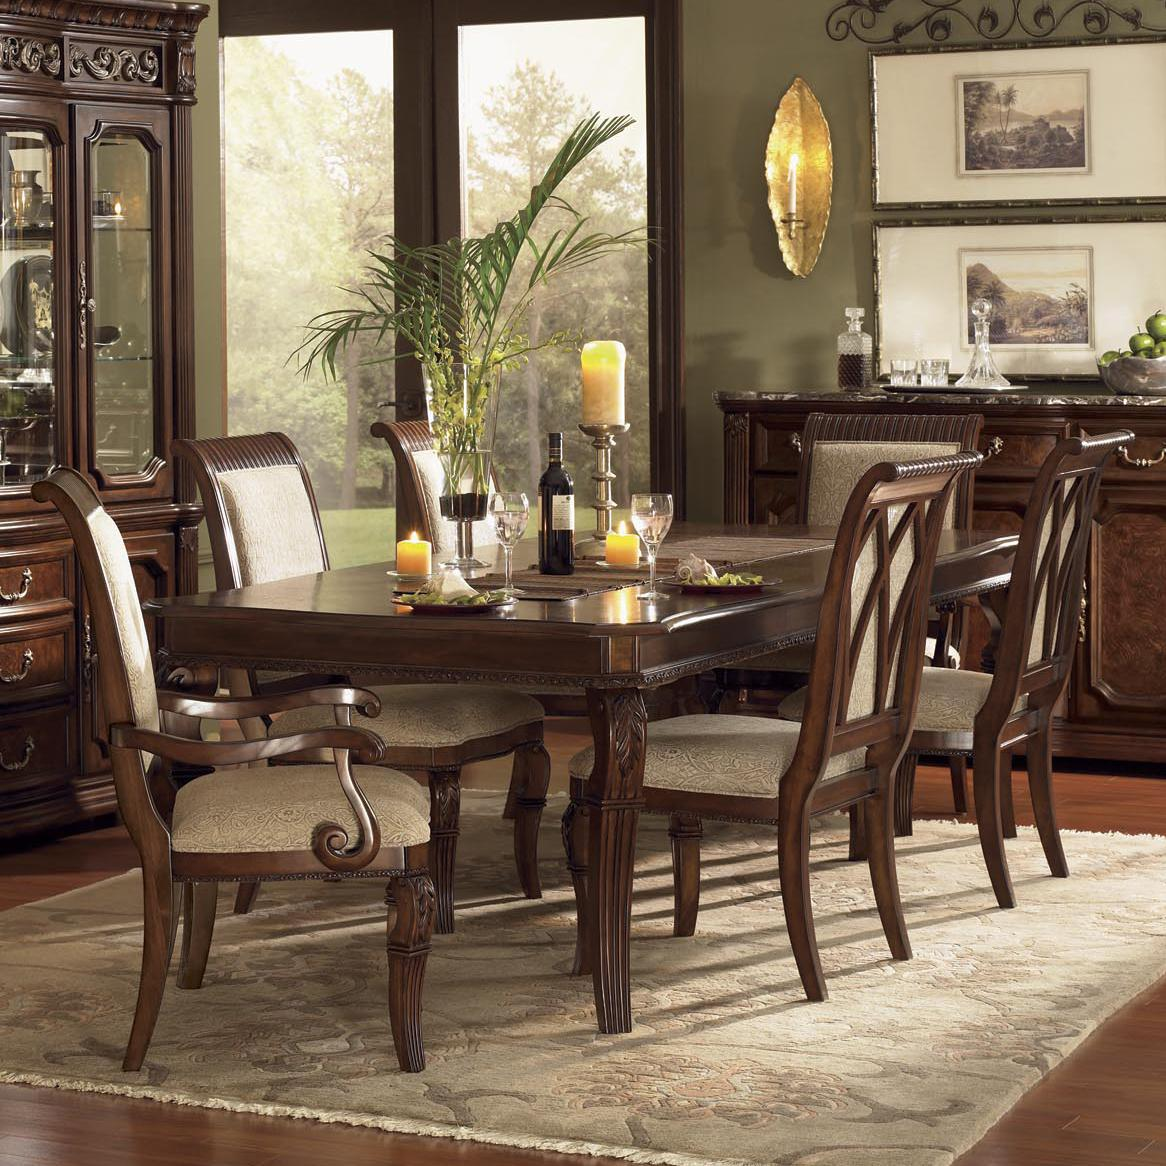 Delightful Flexsteel Wynwood Collection Granada Dining Room Set With Upholstered Chairs    AHFA   Dining 7 (or More) Piece Set Dealer Locator